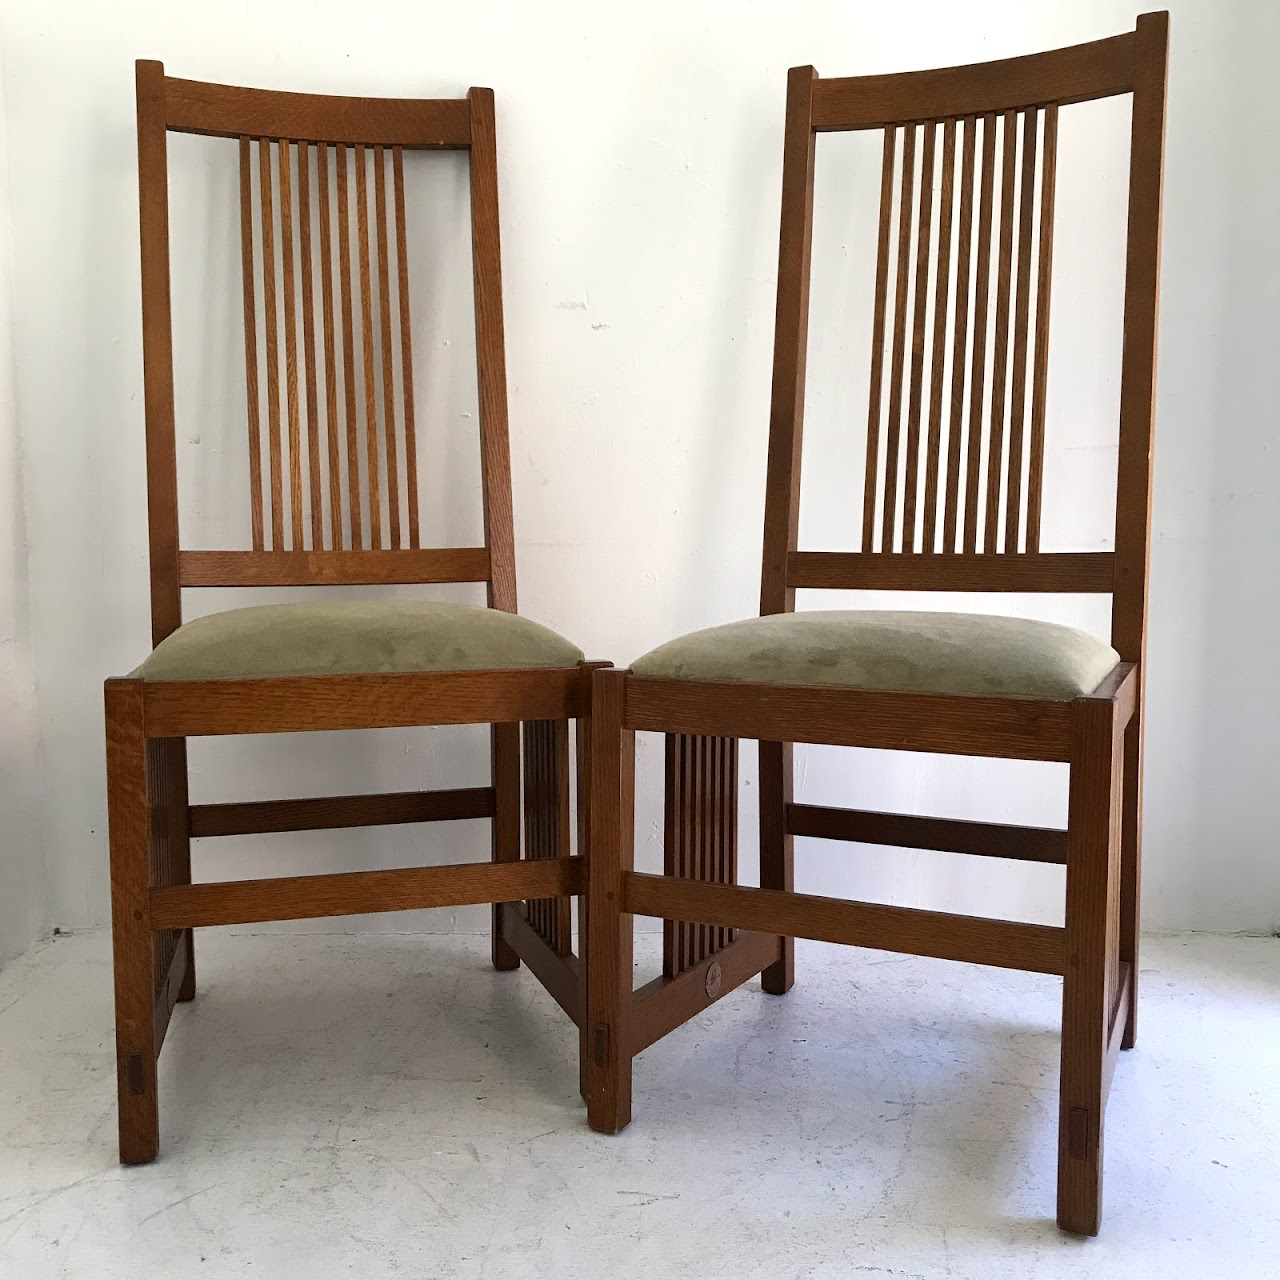 Stickley furniture mission oak side chair pair 1 shophousingworks